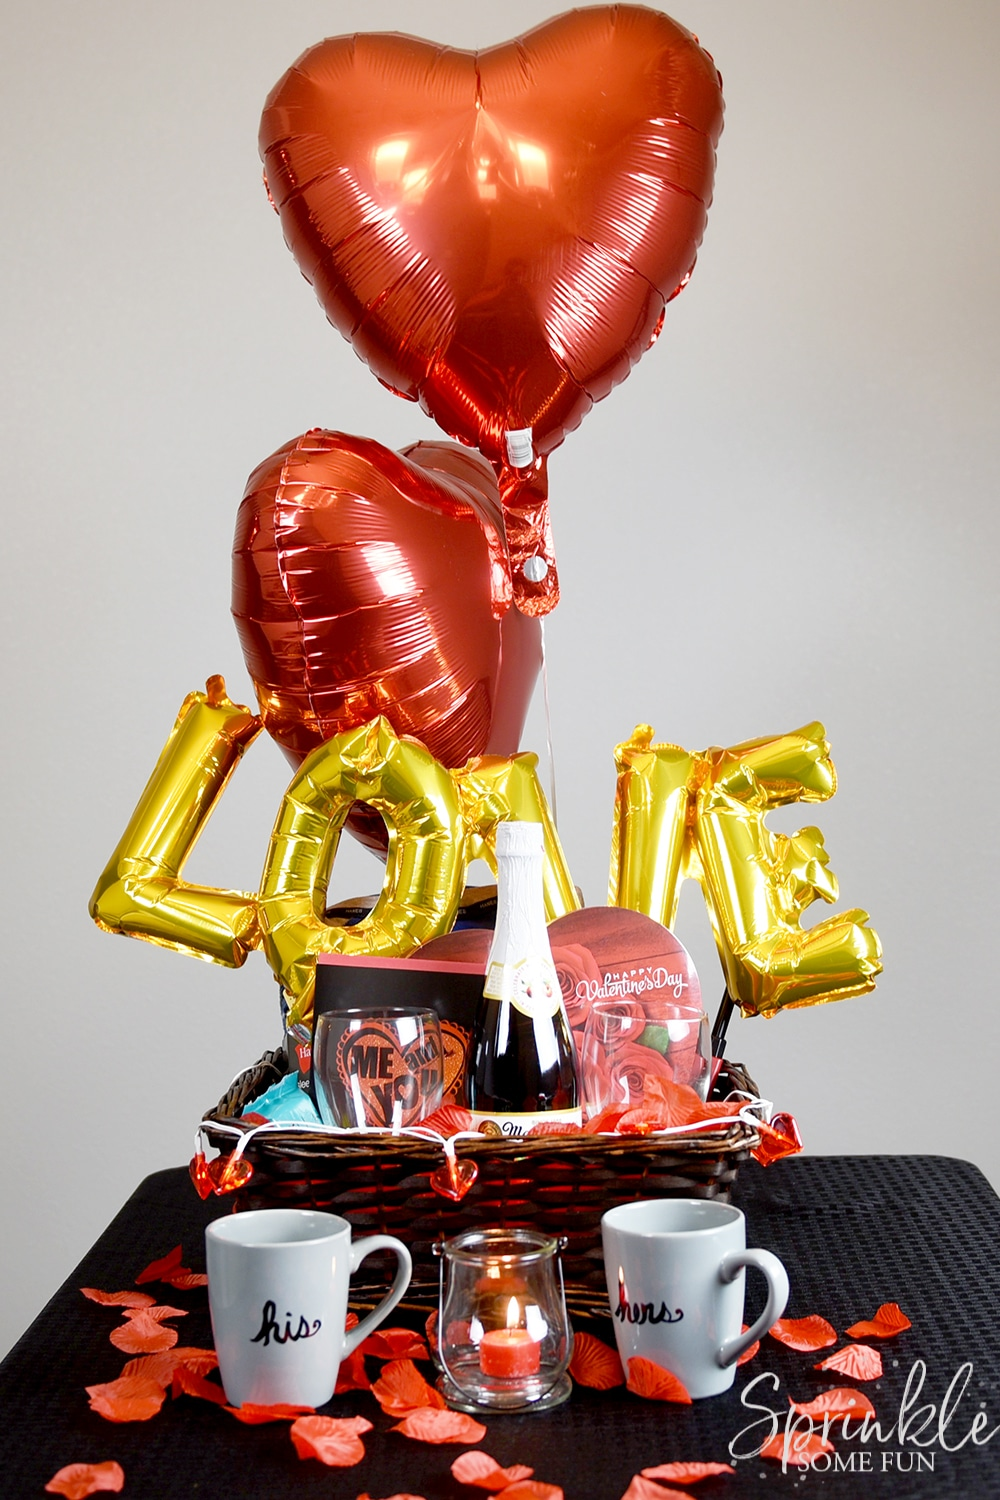 Basket ⋆ Gift Romantic Some Valentine Sprinkle Fun Ideas mNw80Ovn